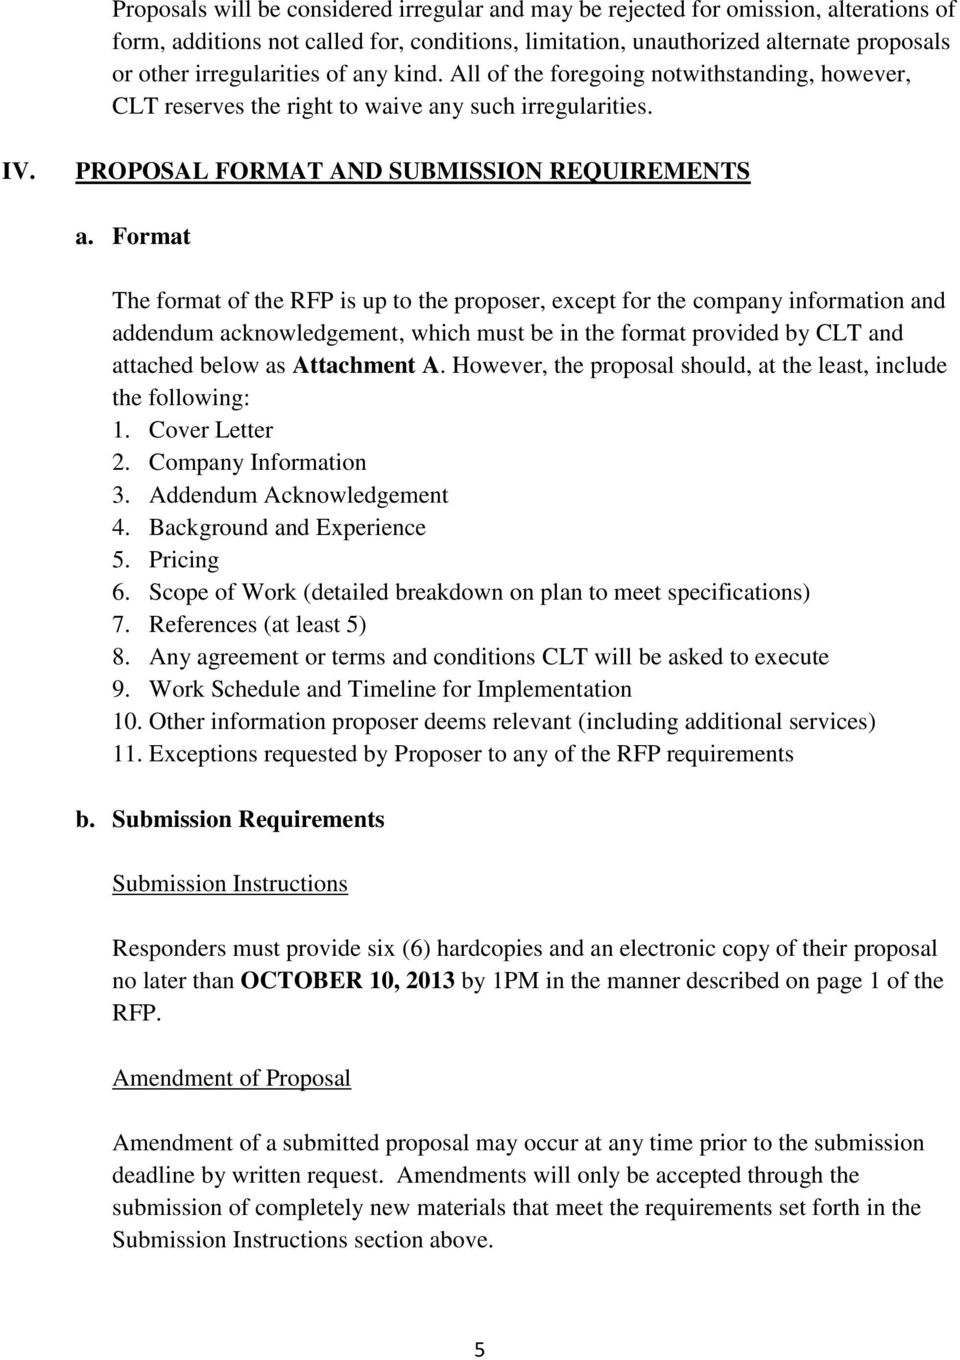 Format The format of the RFP is up to the proposer, except for the company information and addendum acknowledgement, which must be in the format provided by CLT and attached below as Attachment A.